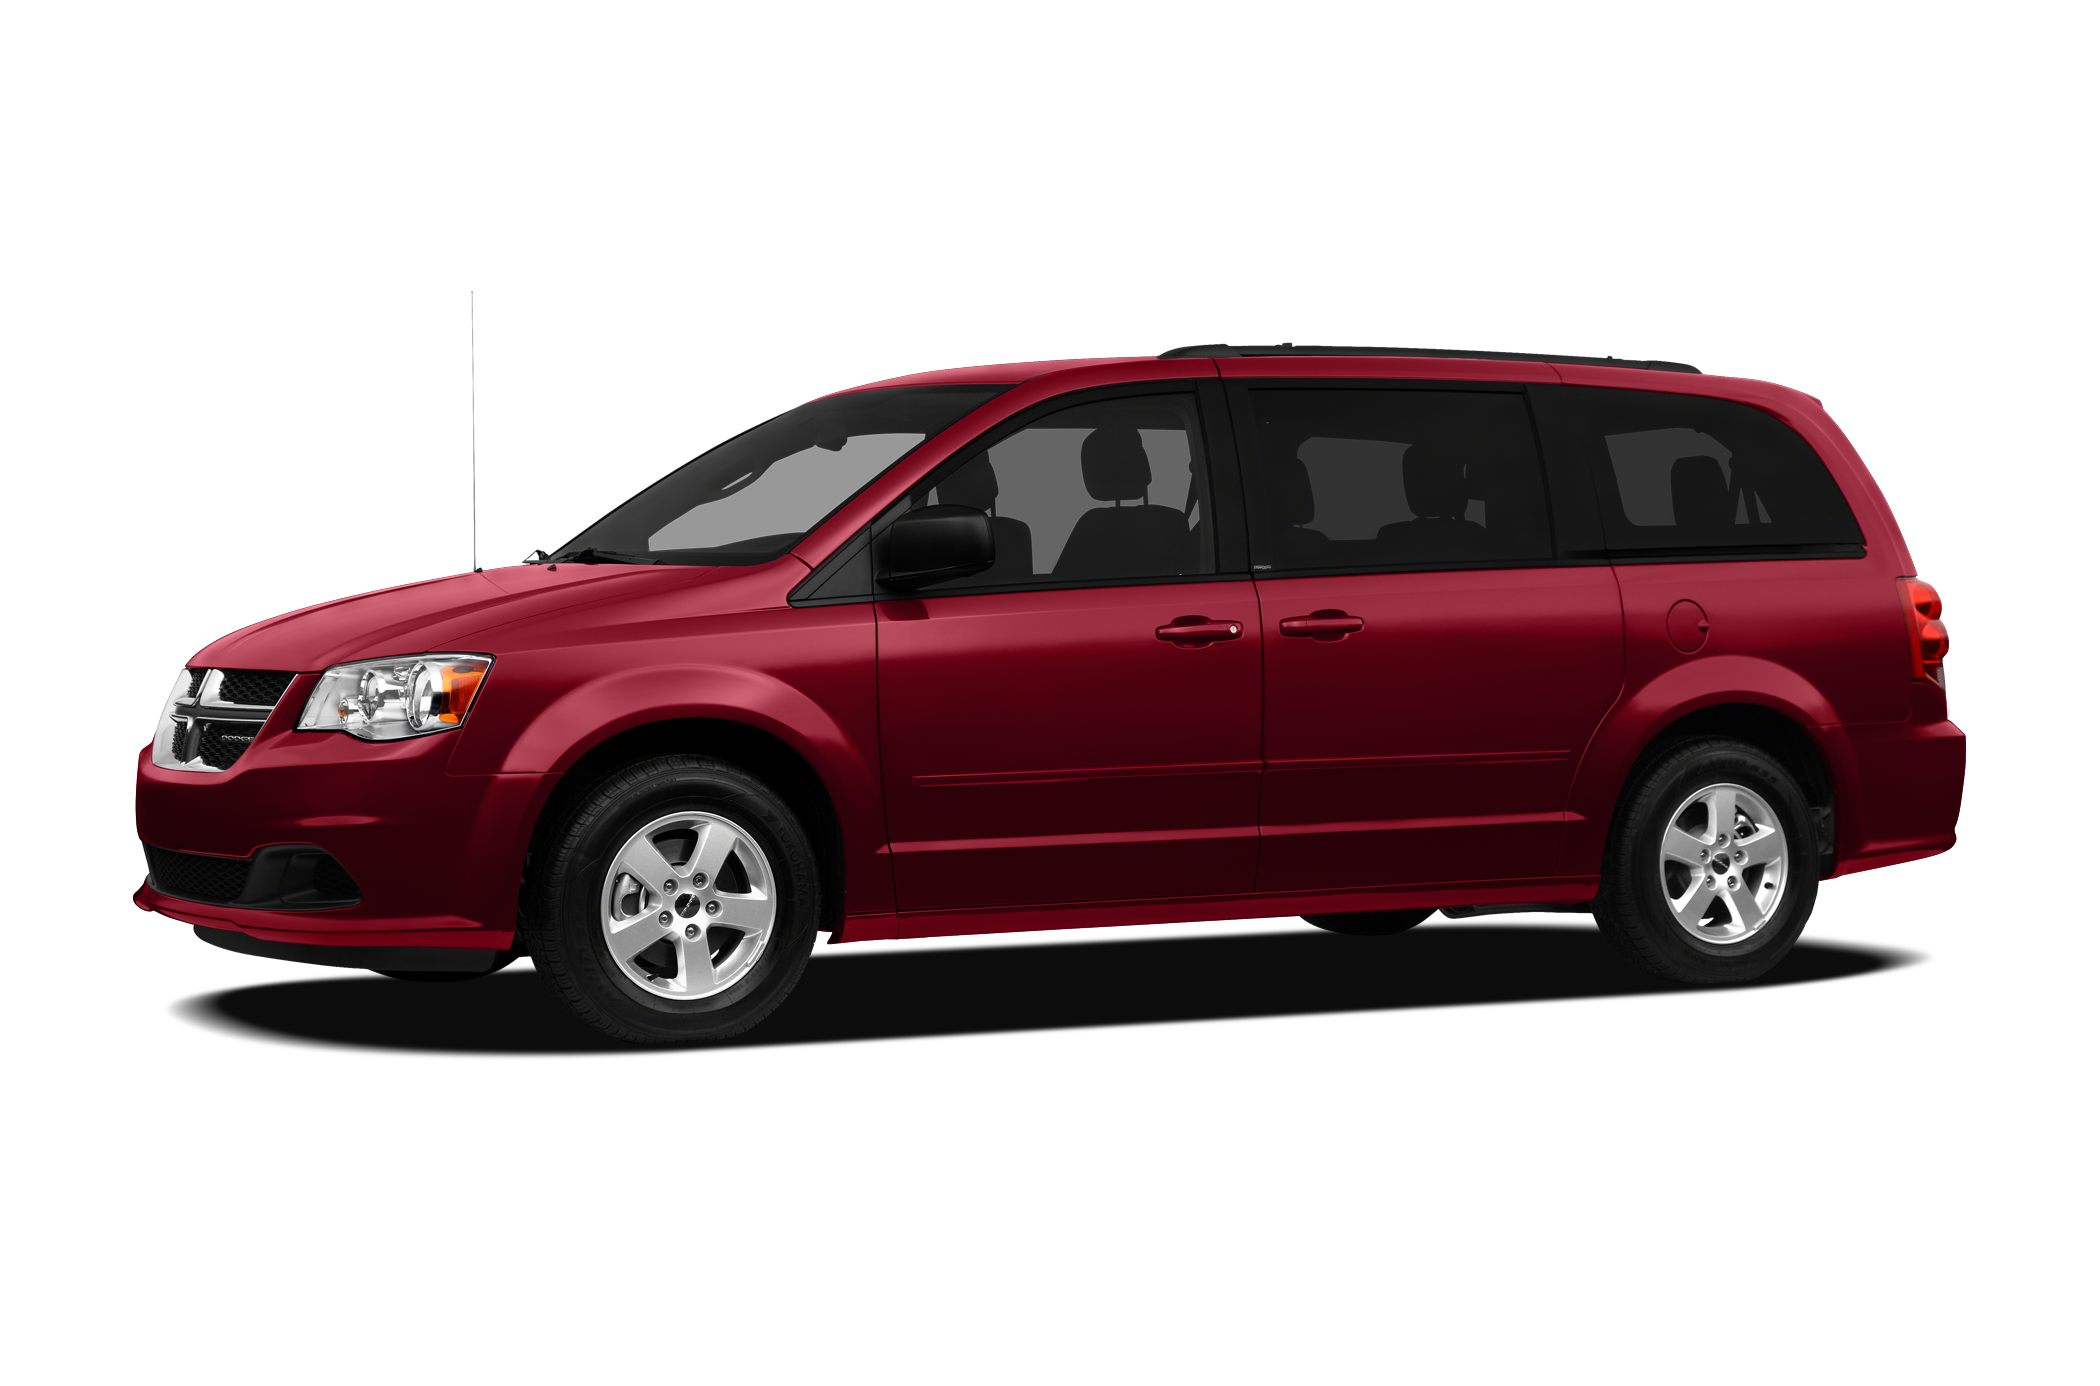 2011 Dodge Grand Caravan Express Minivan for sale in Brentwood for $9,999 with 102,480 miles.